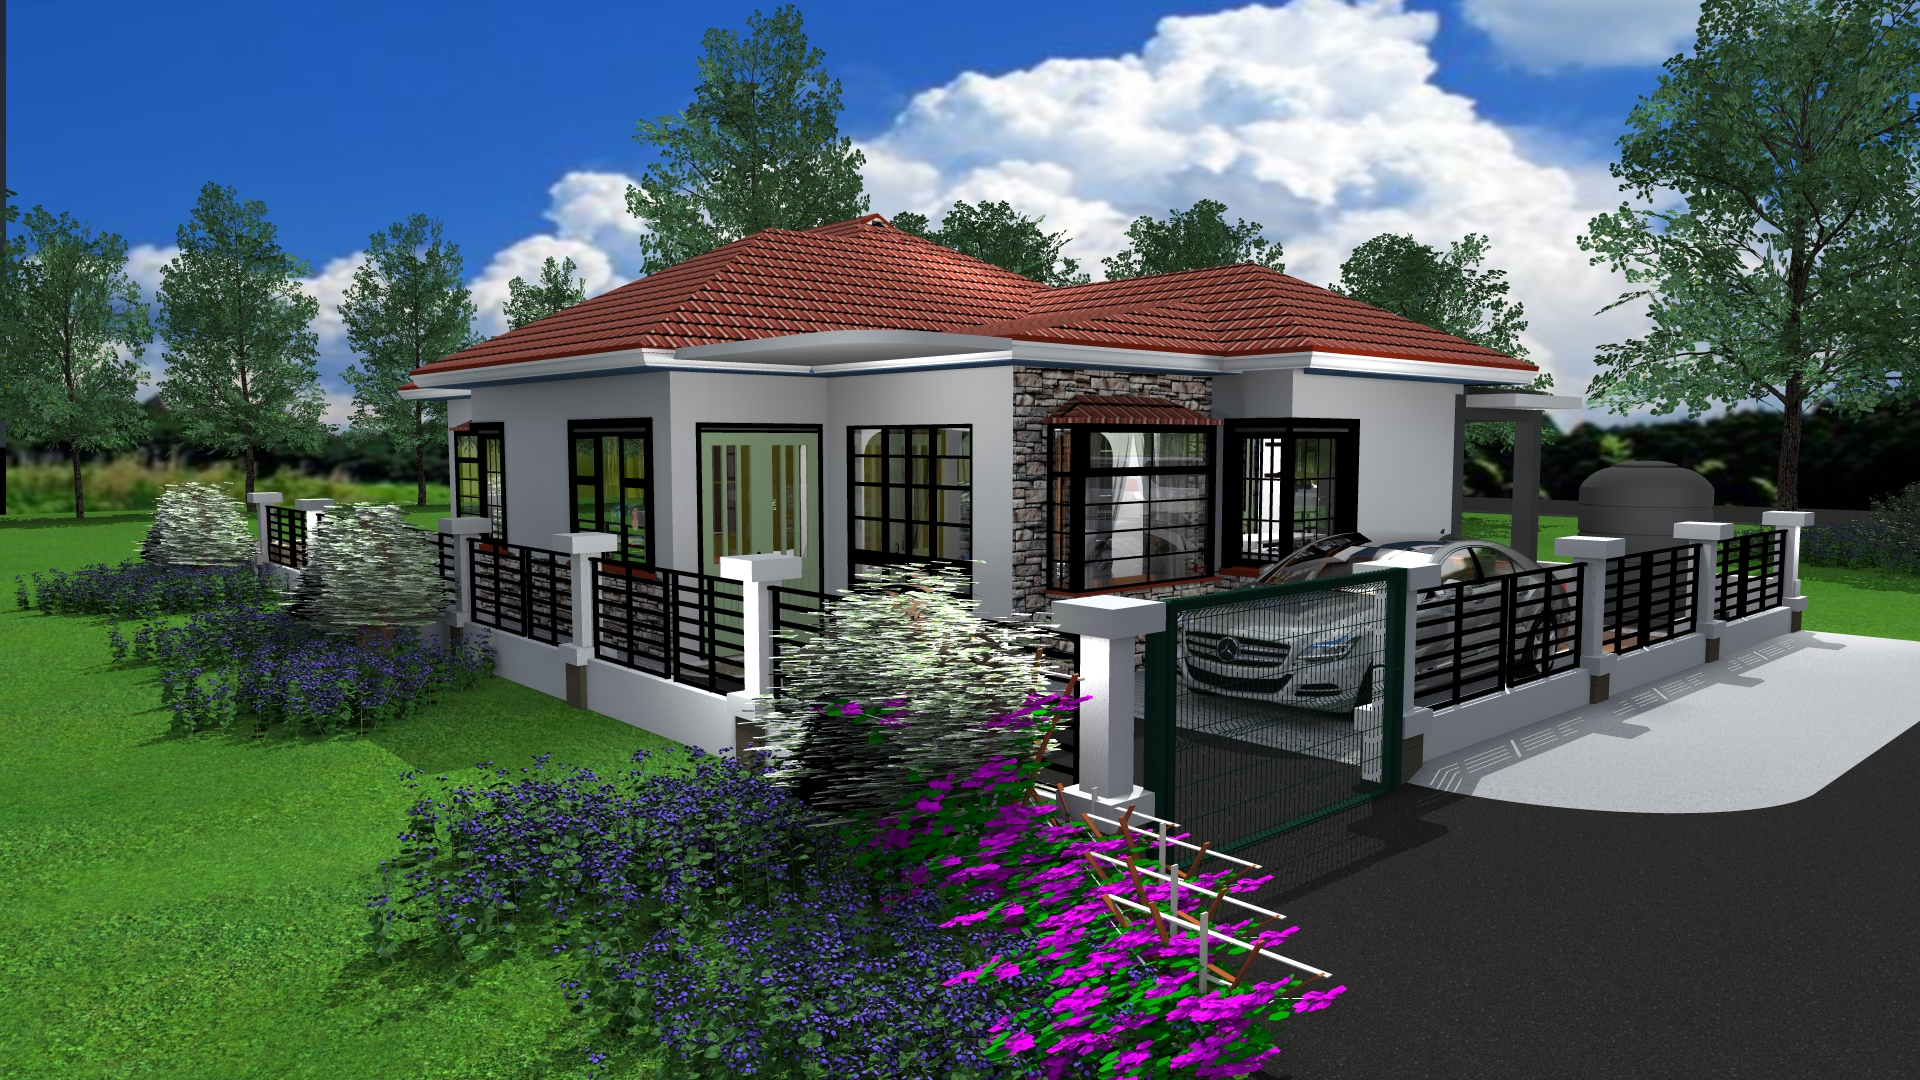 Three bedroom Bungalow House Design in Kenya - Muthurwa.com